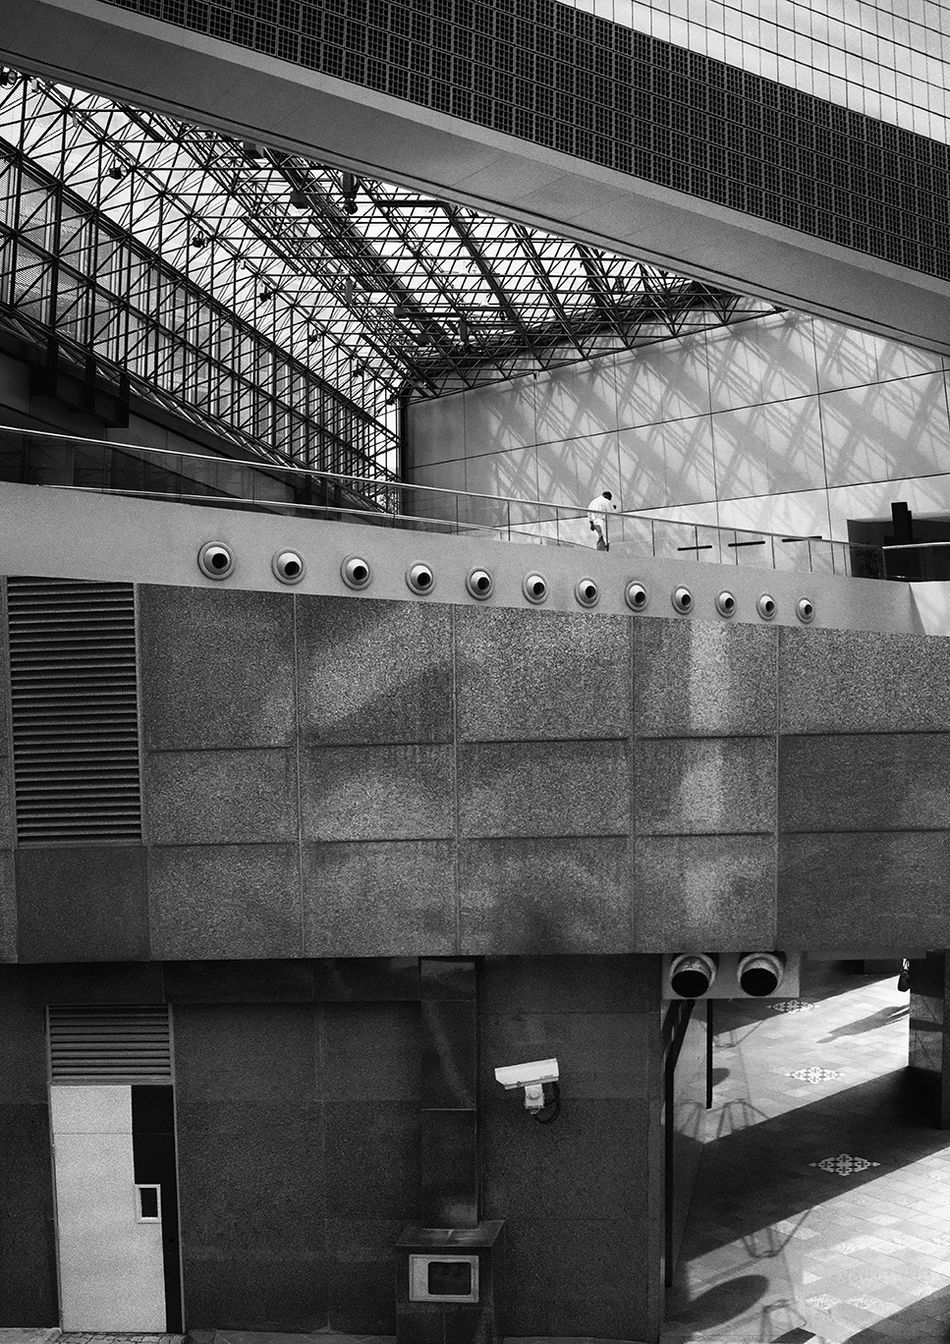 SPLACE #02 35mm Film Architecture ArchiTexture Blackandwhite Photography Building Geometric Abstraction Light And Shadow Splace The Architect - 20I6 EyeEm Awards Abstract Architecture Monochrome Photography